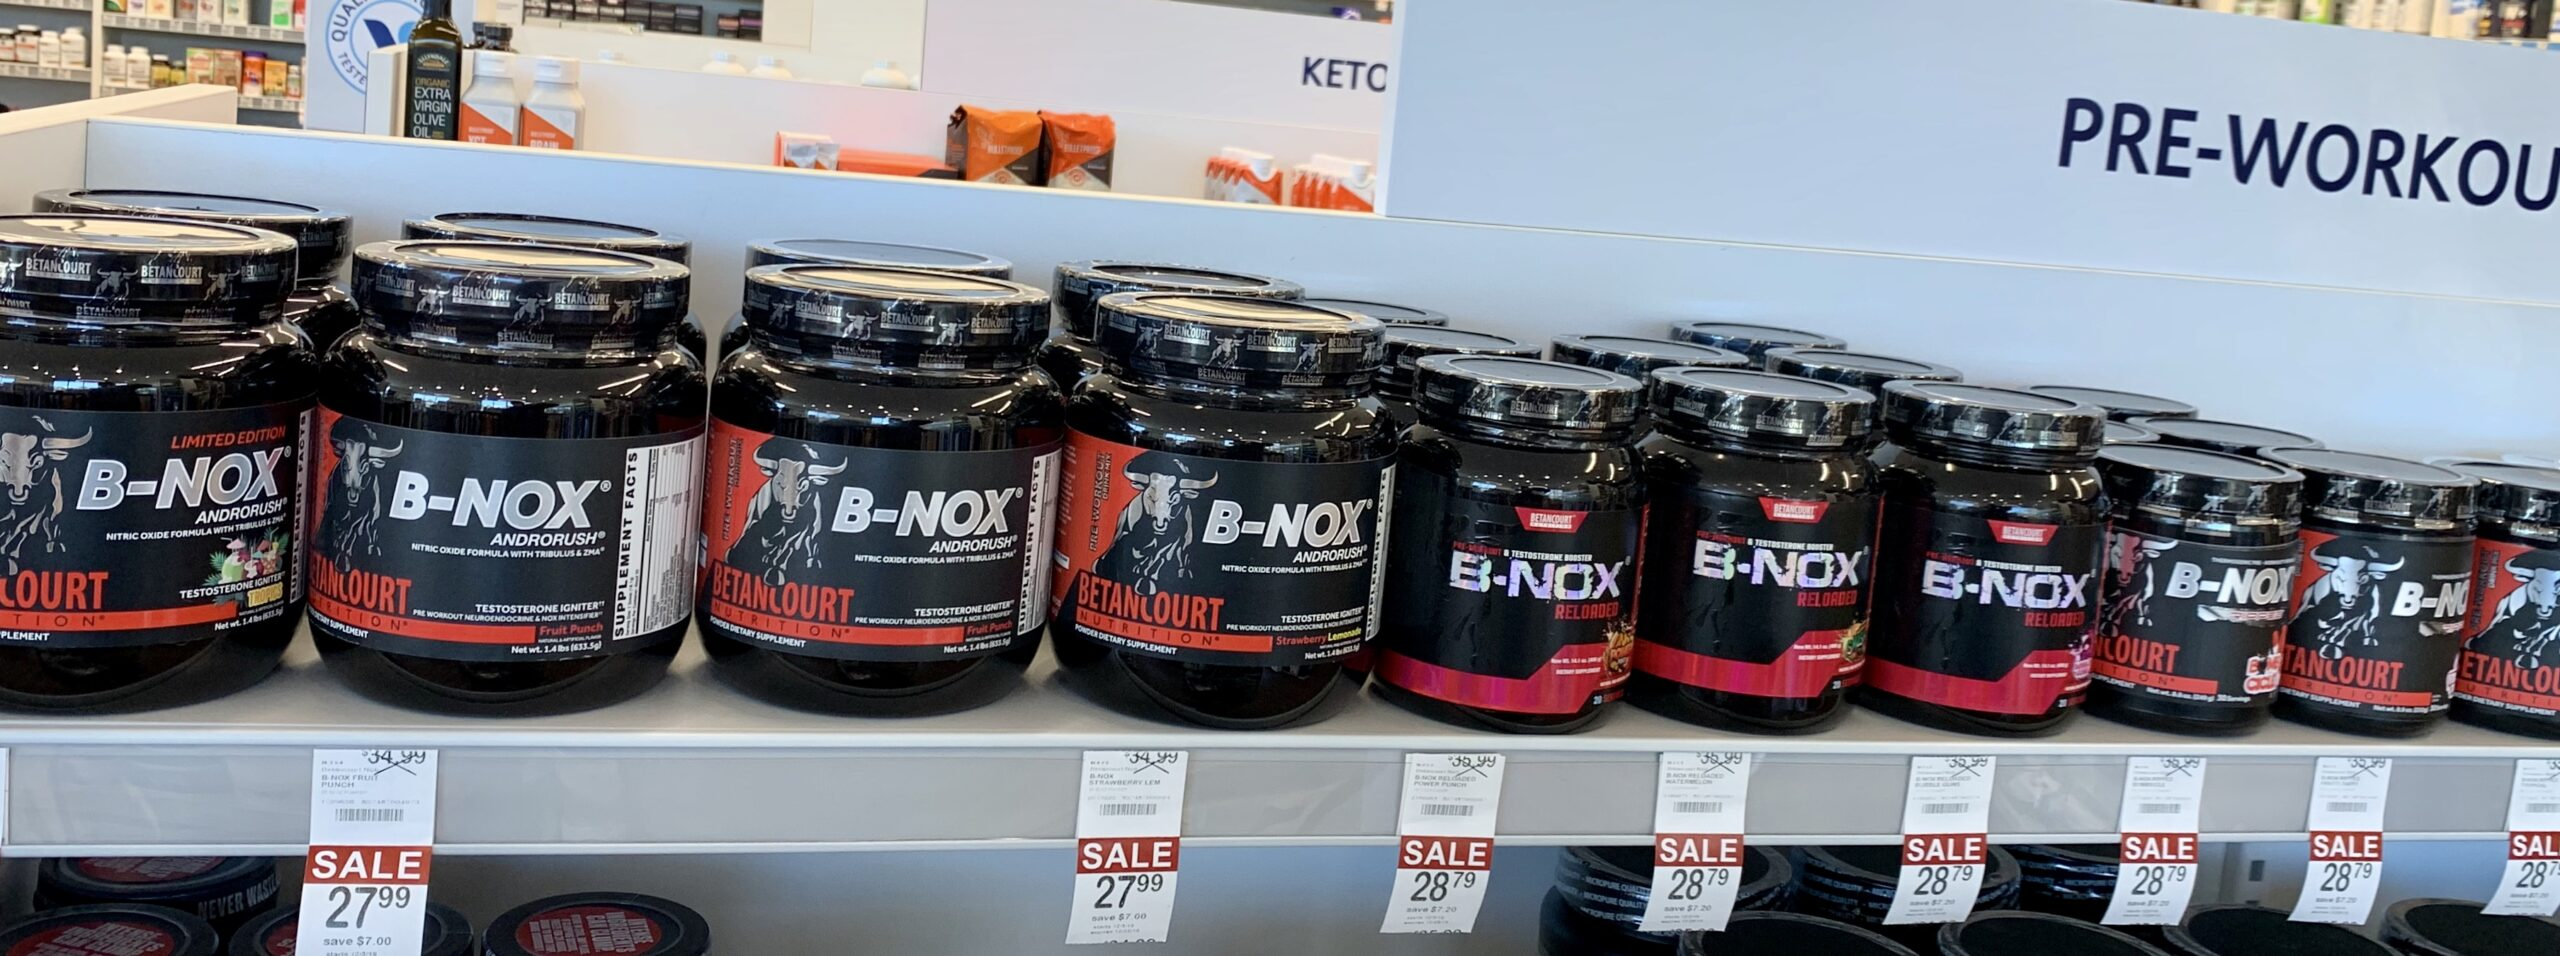 Best place to buy pre workouts - B-Nox pre workout